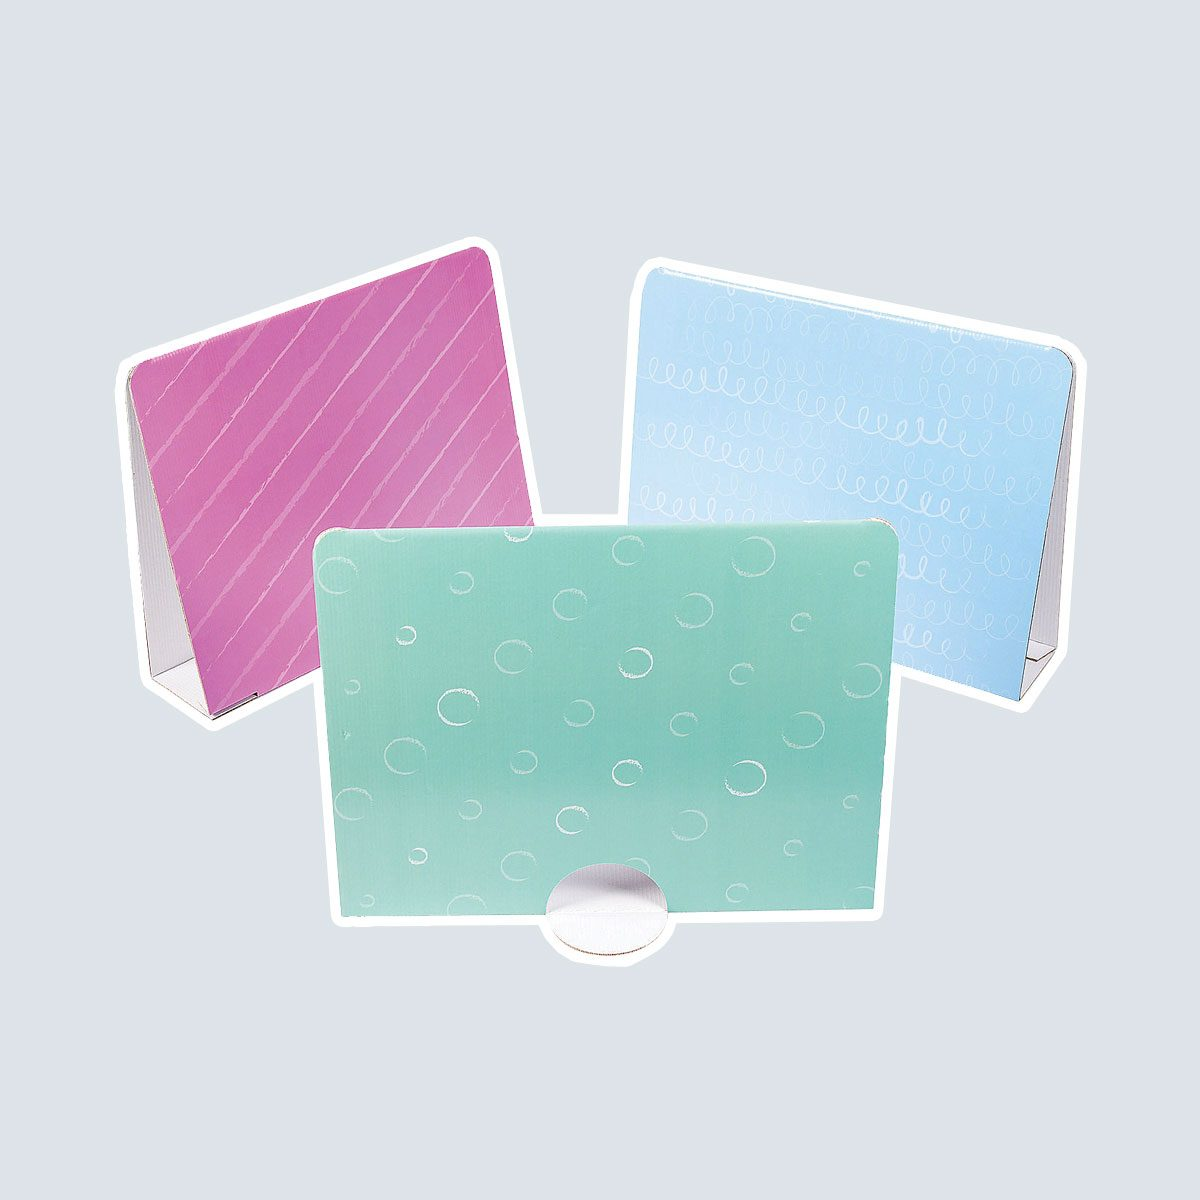 Tabletop Privacy Dividers